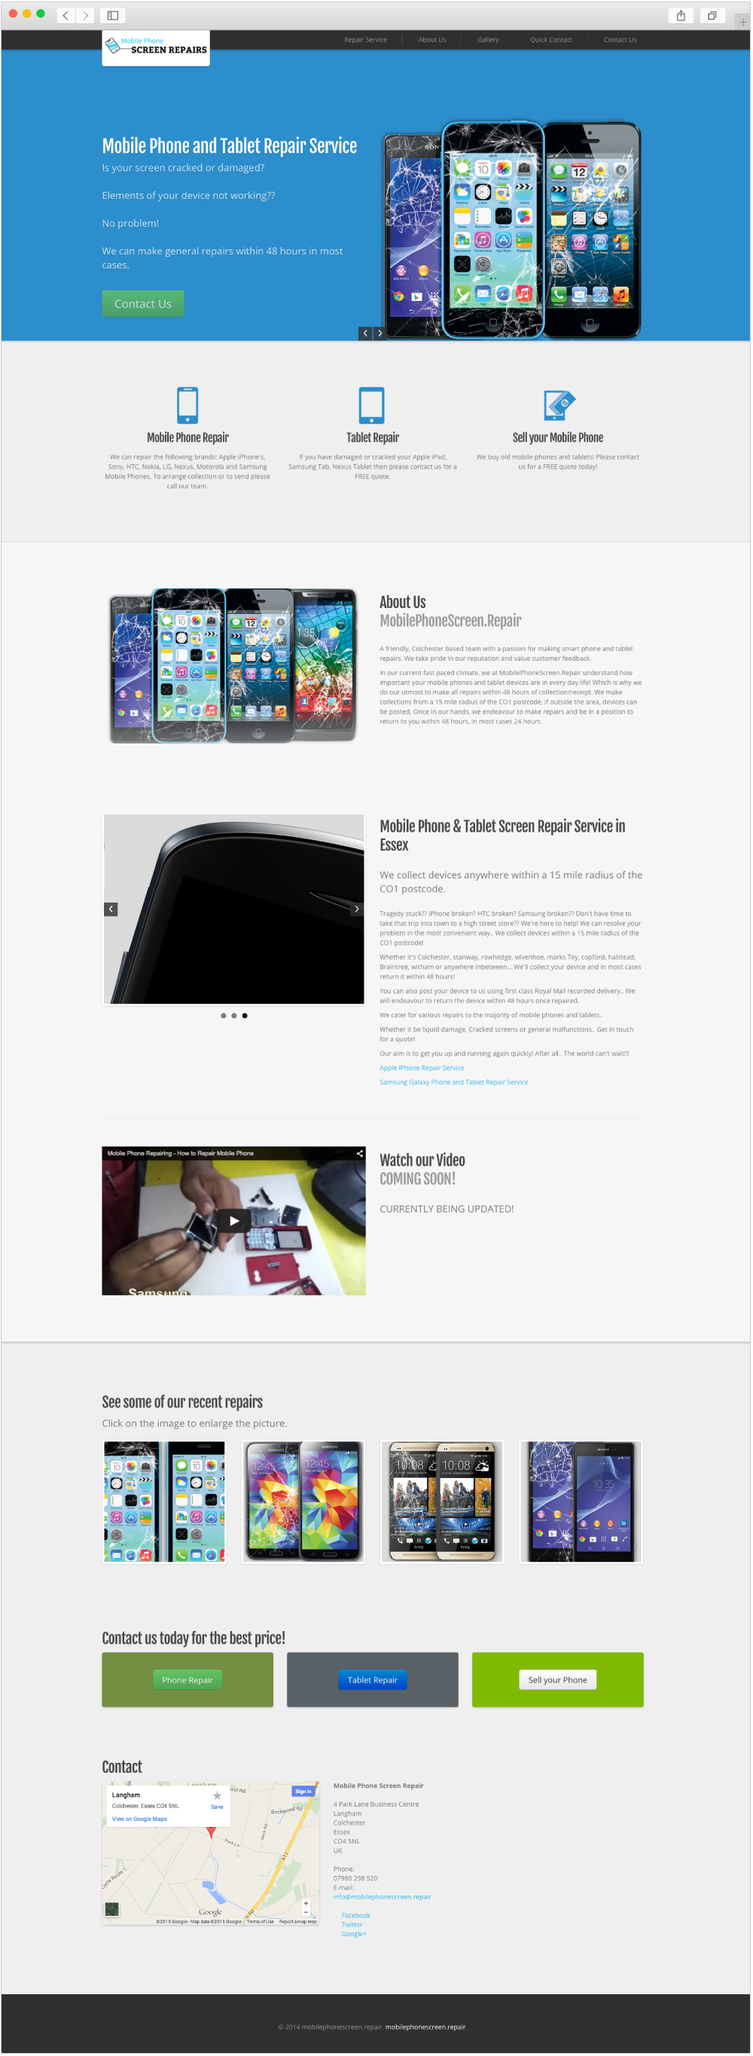 Mobile Phone Screen Repair web design by Studio Link 11